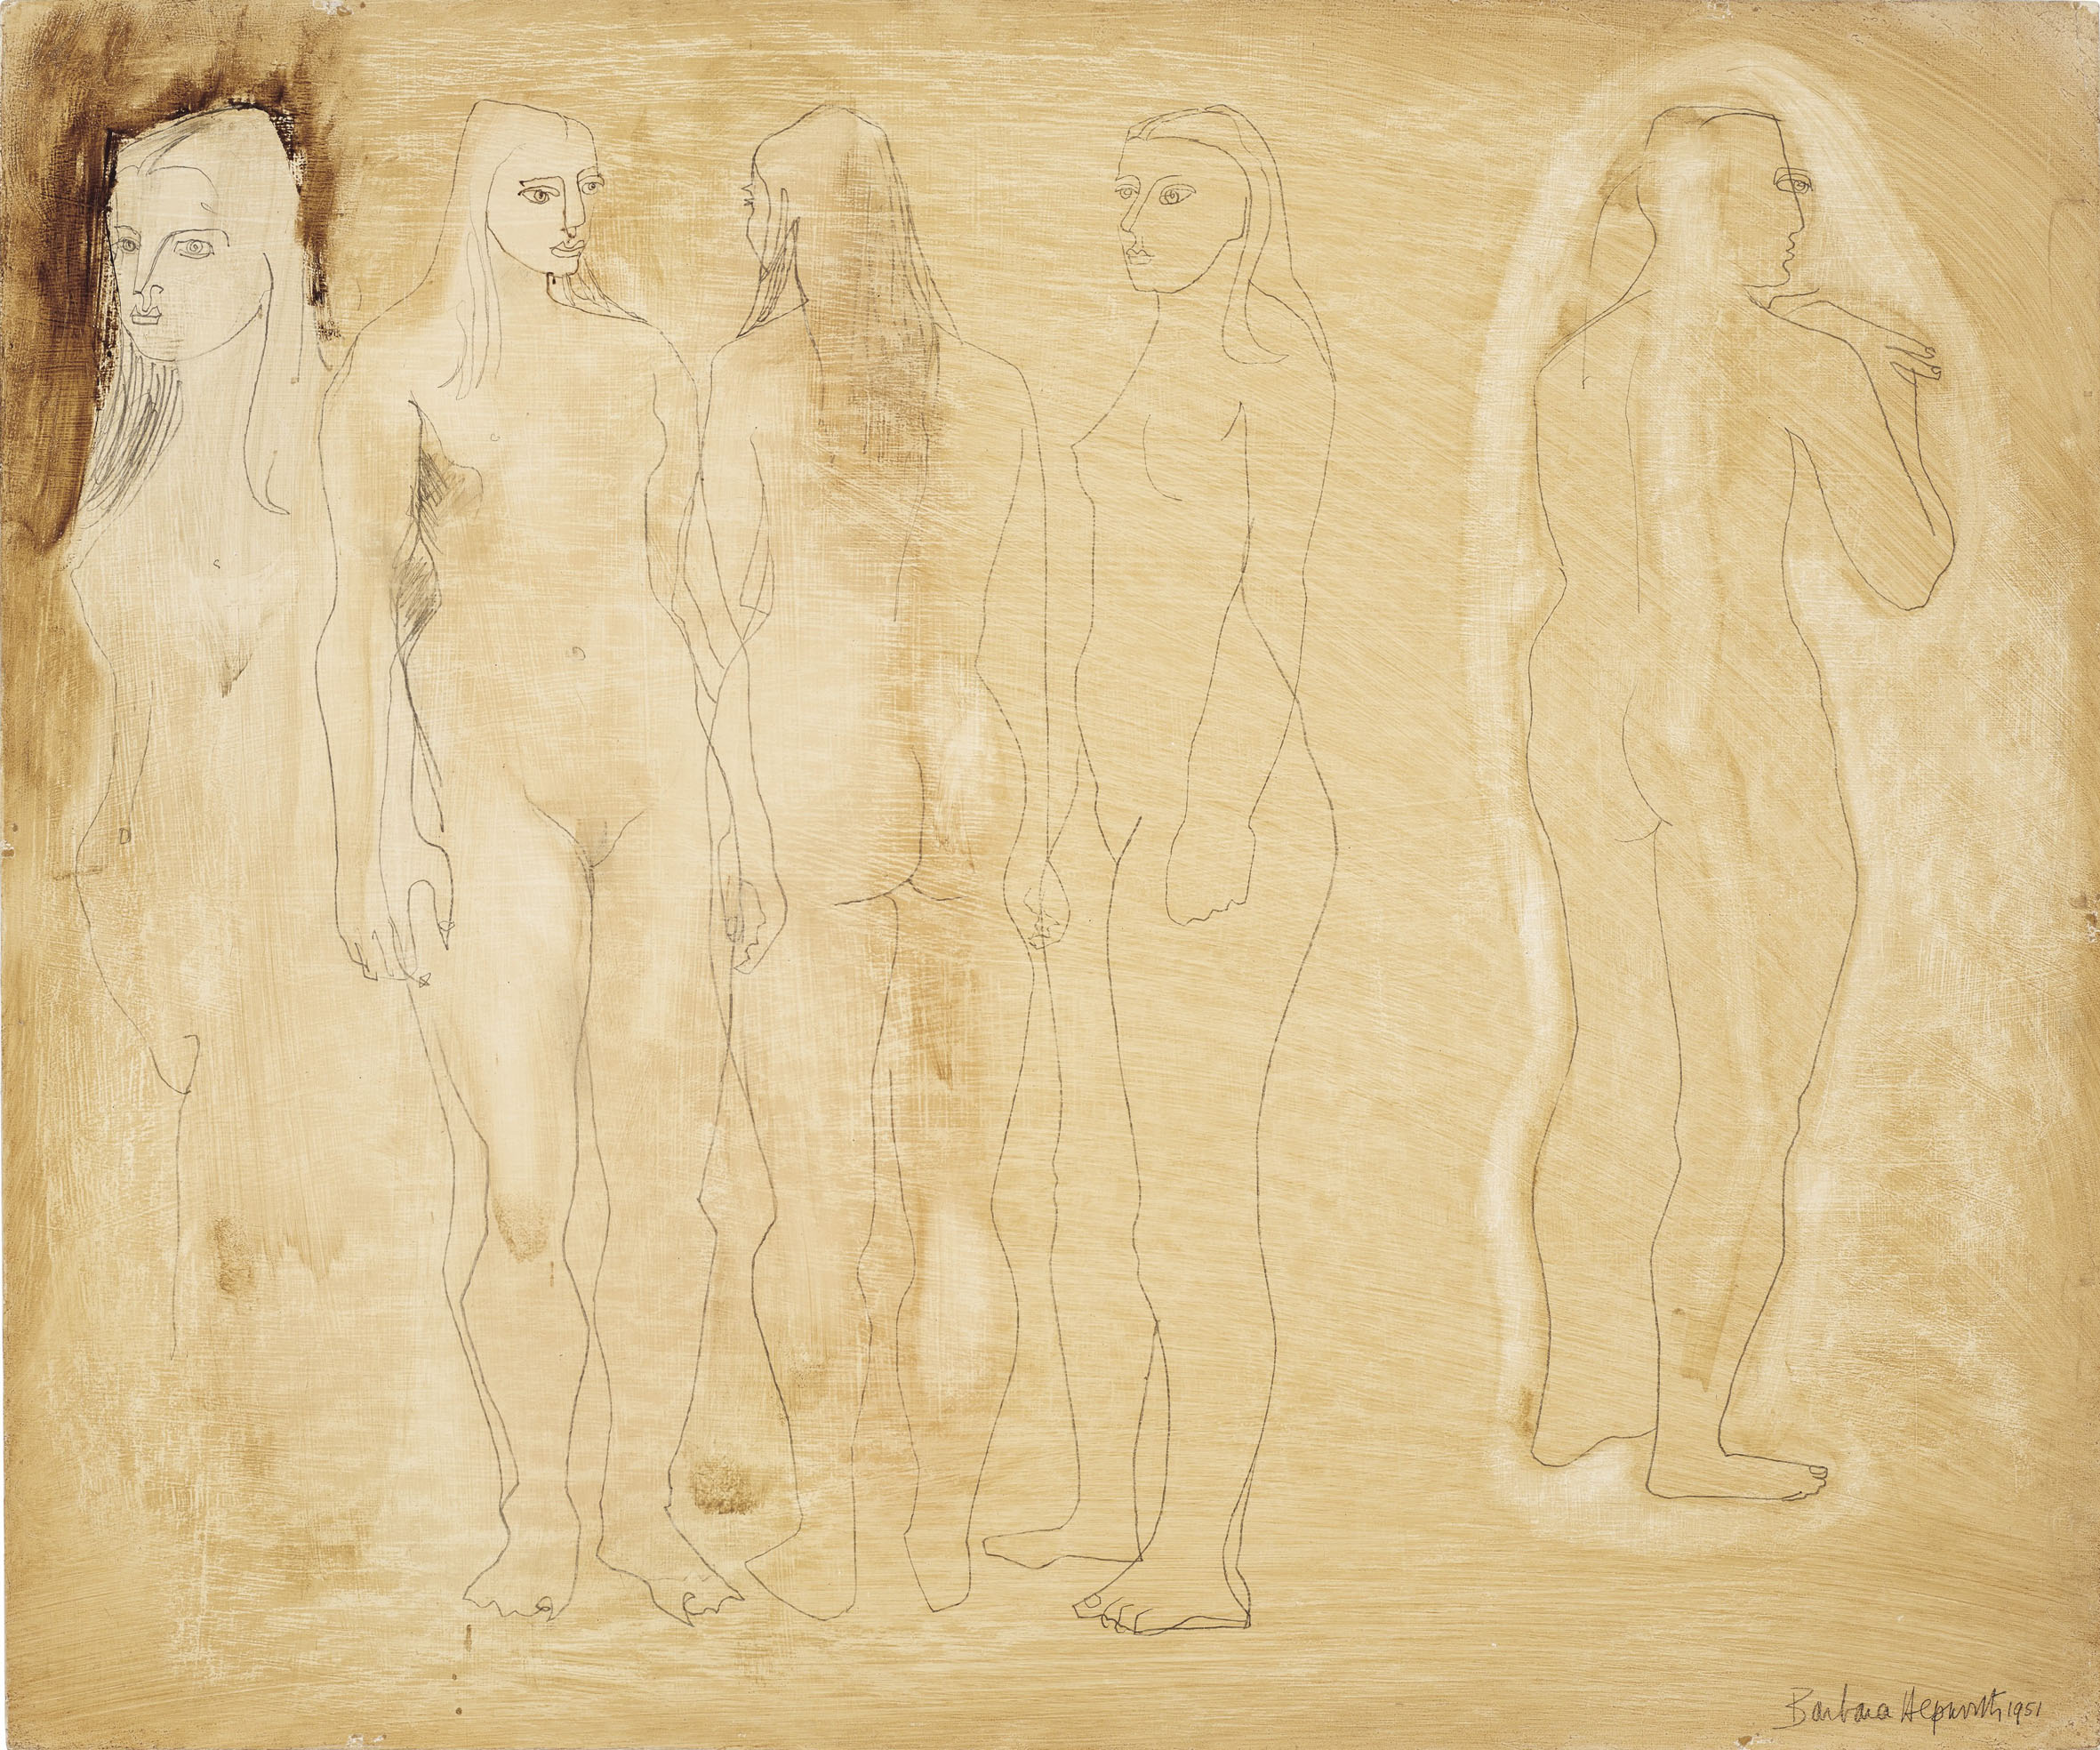 Barbara Hepworth, Group of Figures and Head (Burnt Umber), 1951, courtesy Connaught Brown